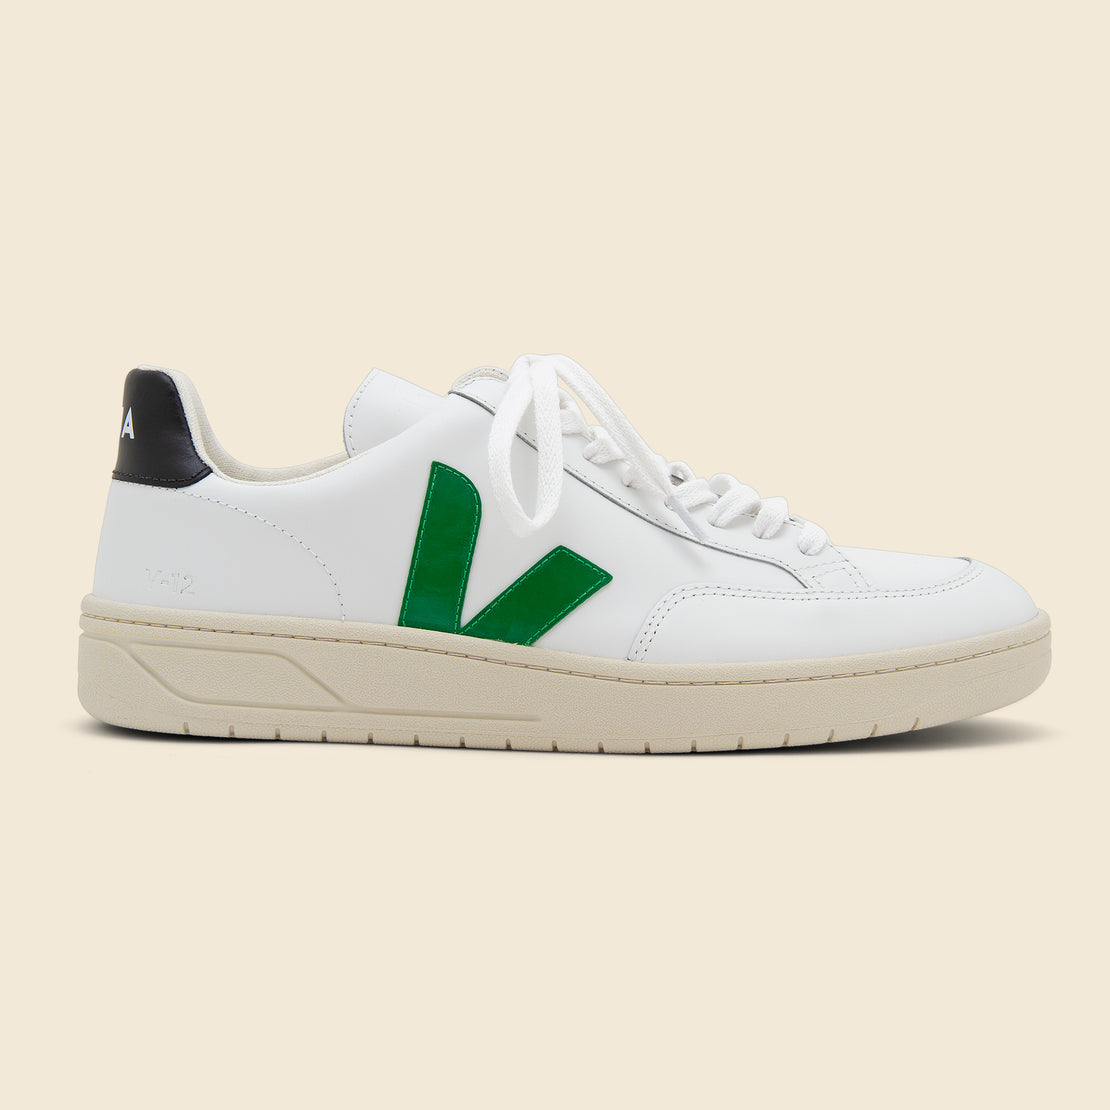 Veja V-12 Leather Sneaker - Extra White/Emeraude Black